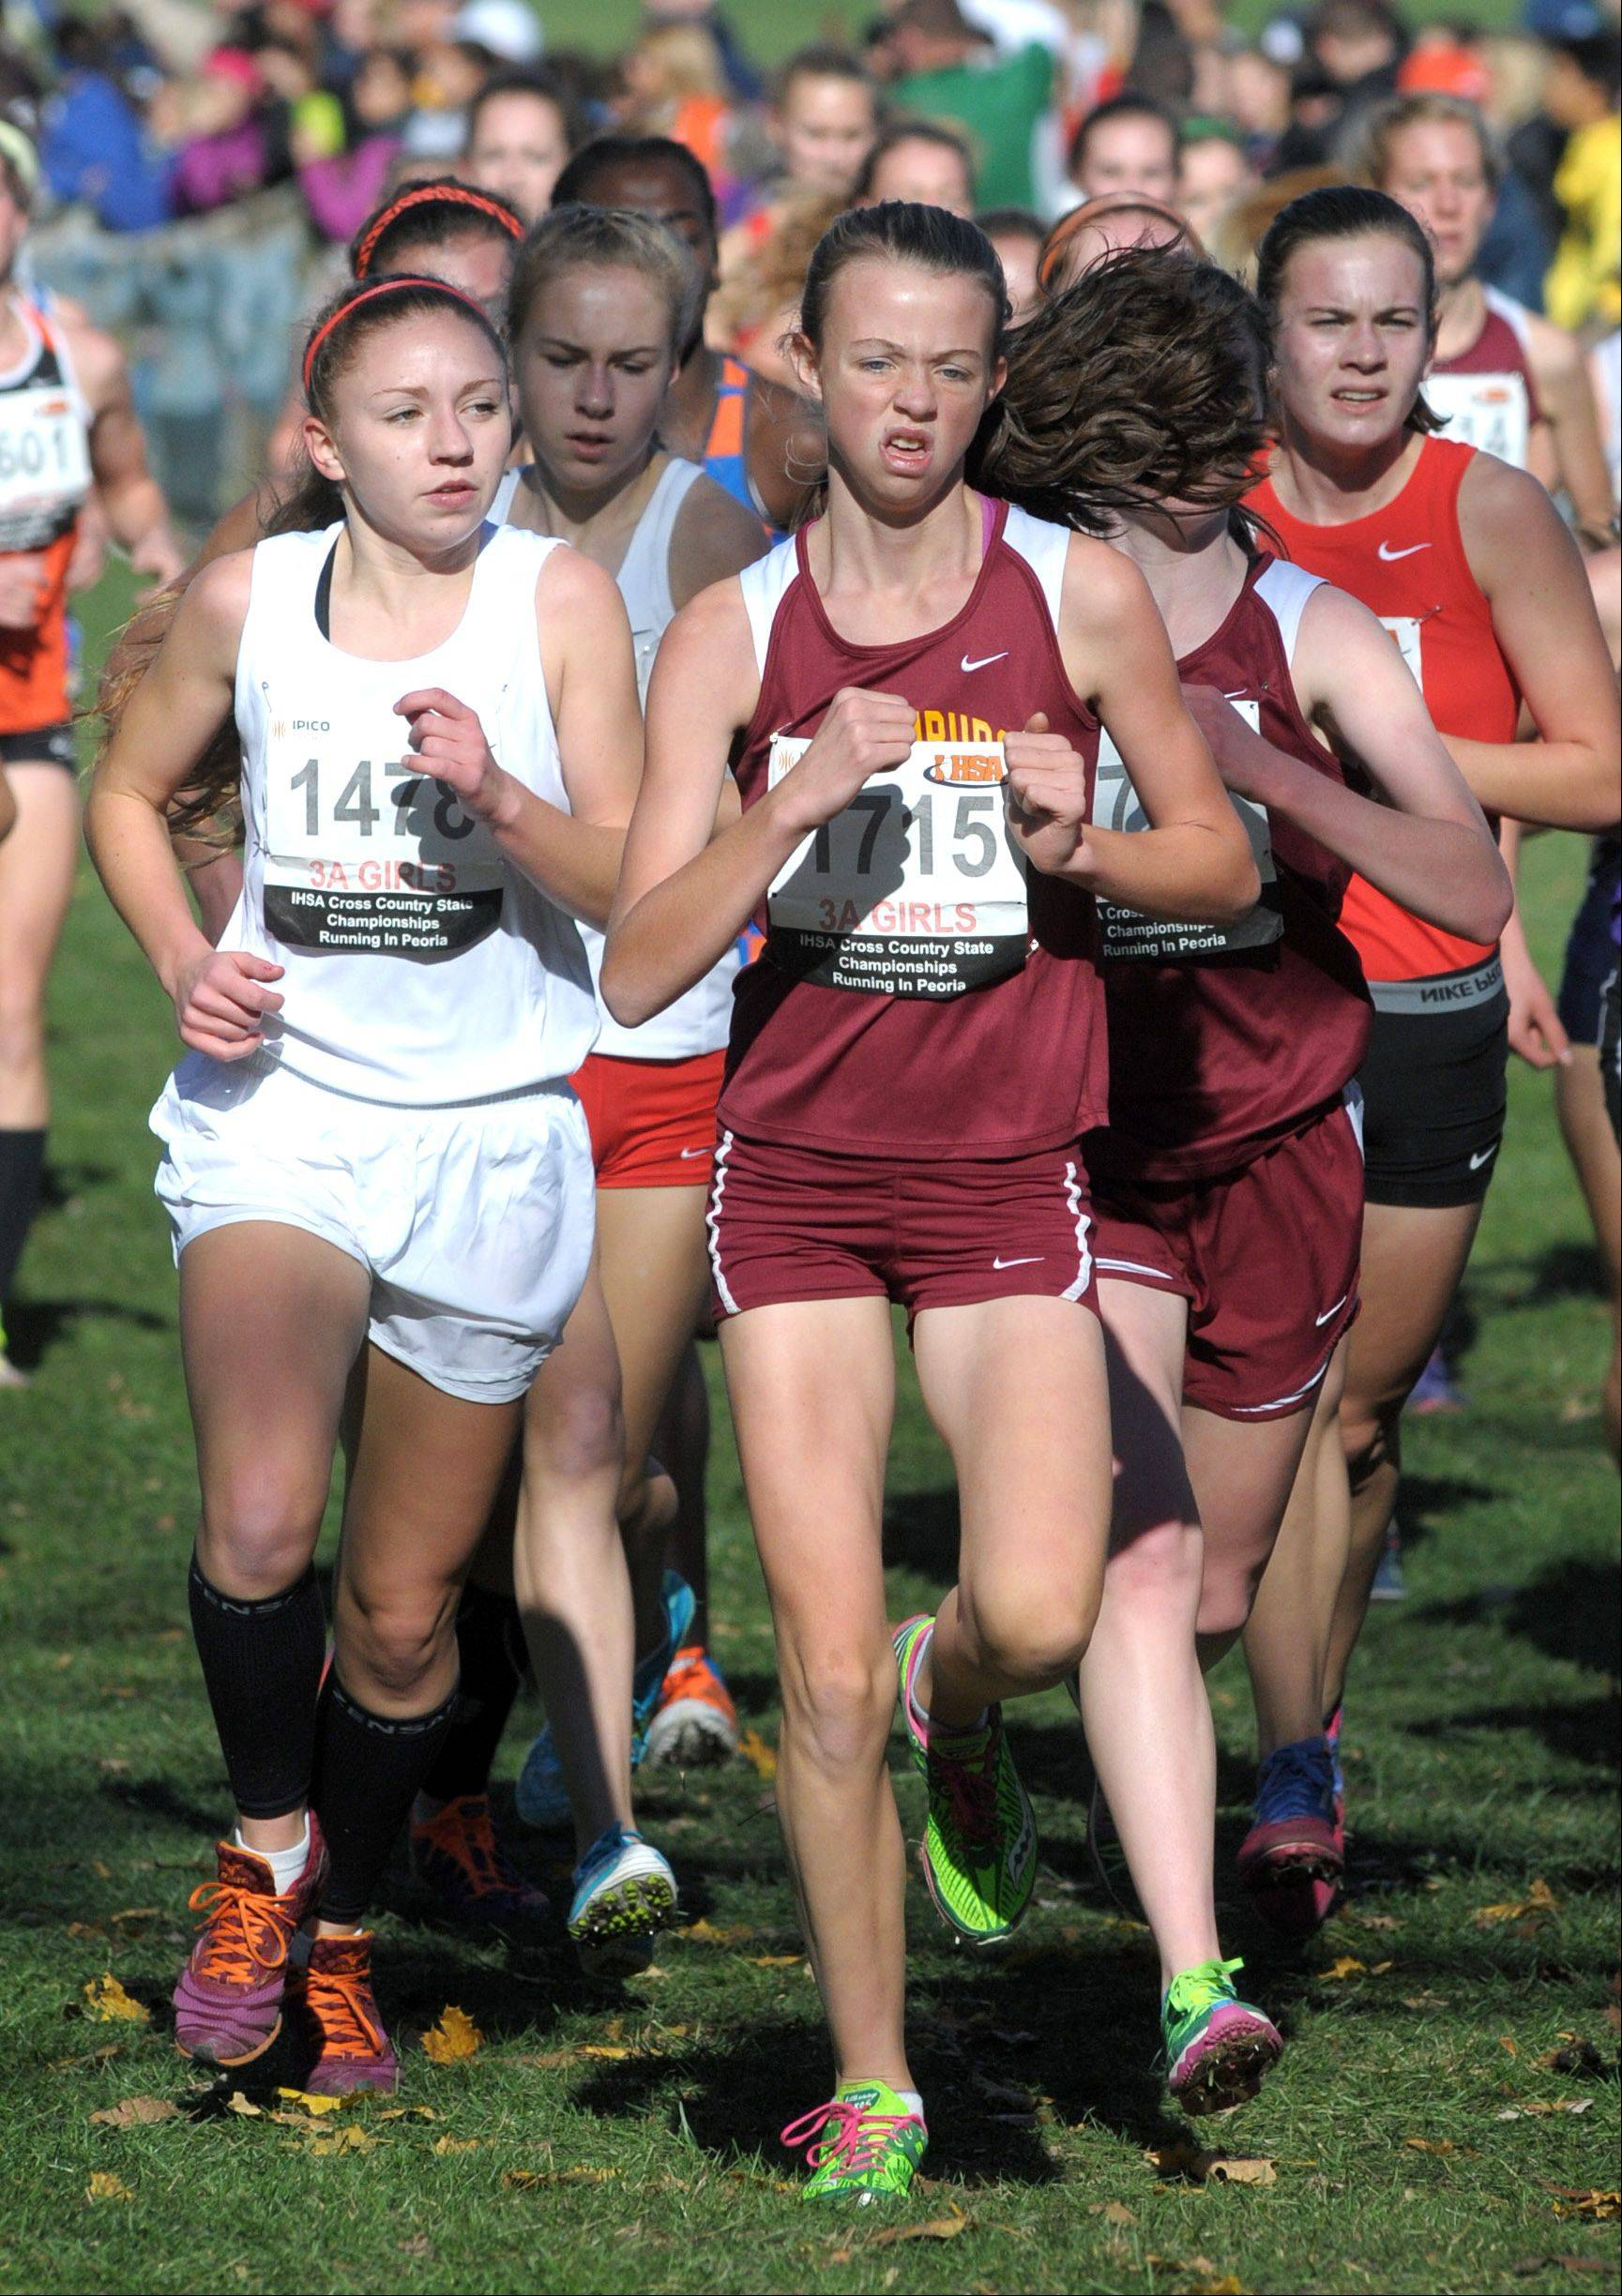 Barrington's Caroline Reynolds (1478) and Schaumburg's Ellie O'Connell (1715) compete in the Class 3A cross country state finals at Detweiller Park in Peoria on Saturday.